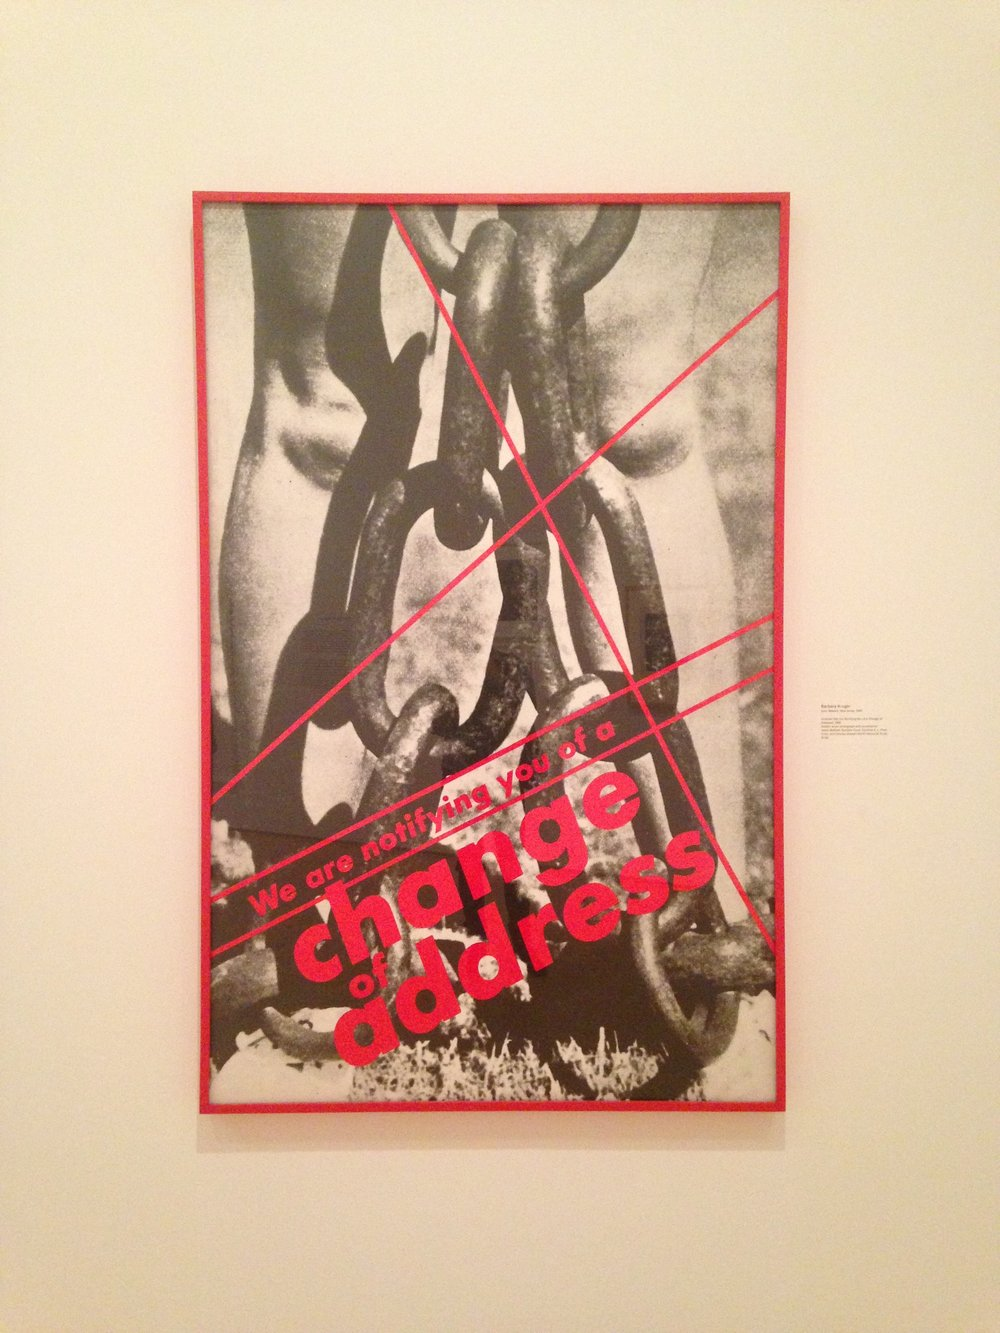 BK Museum's feminist collection